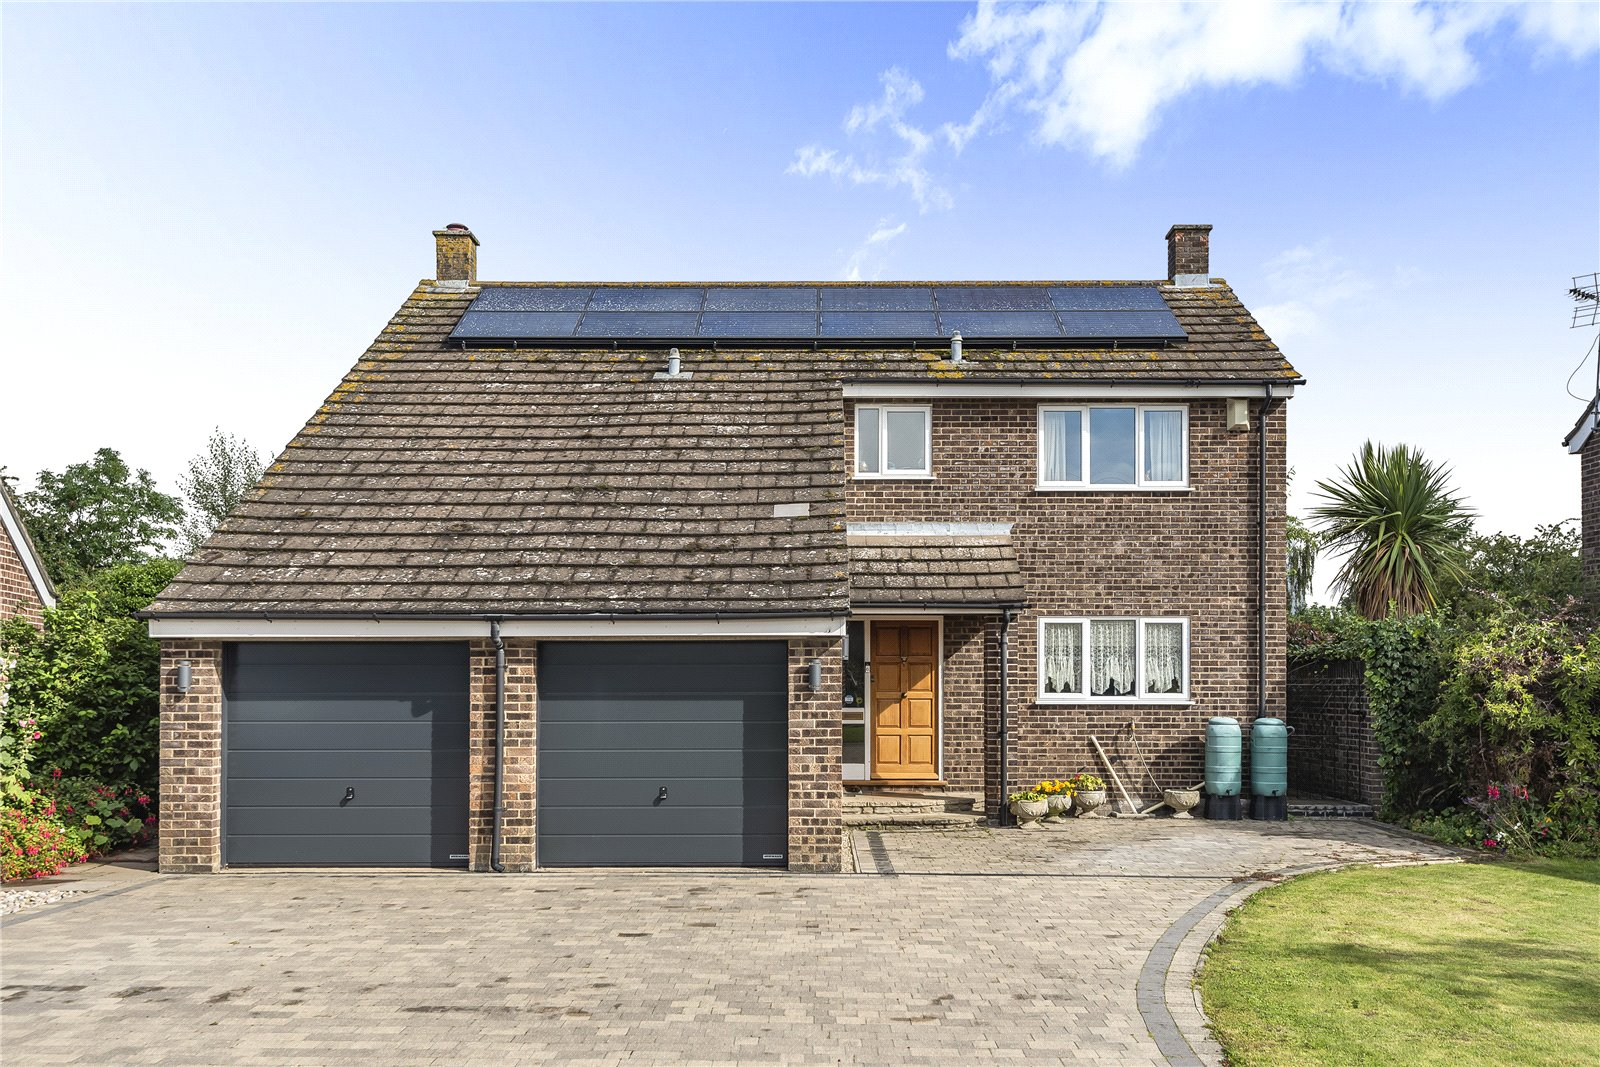 4 bed  for sale in Mill Road, Over, CB24